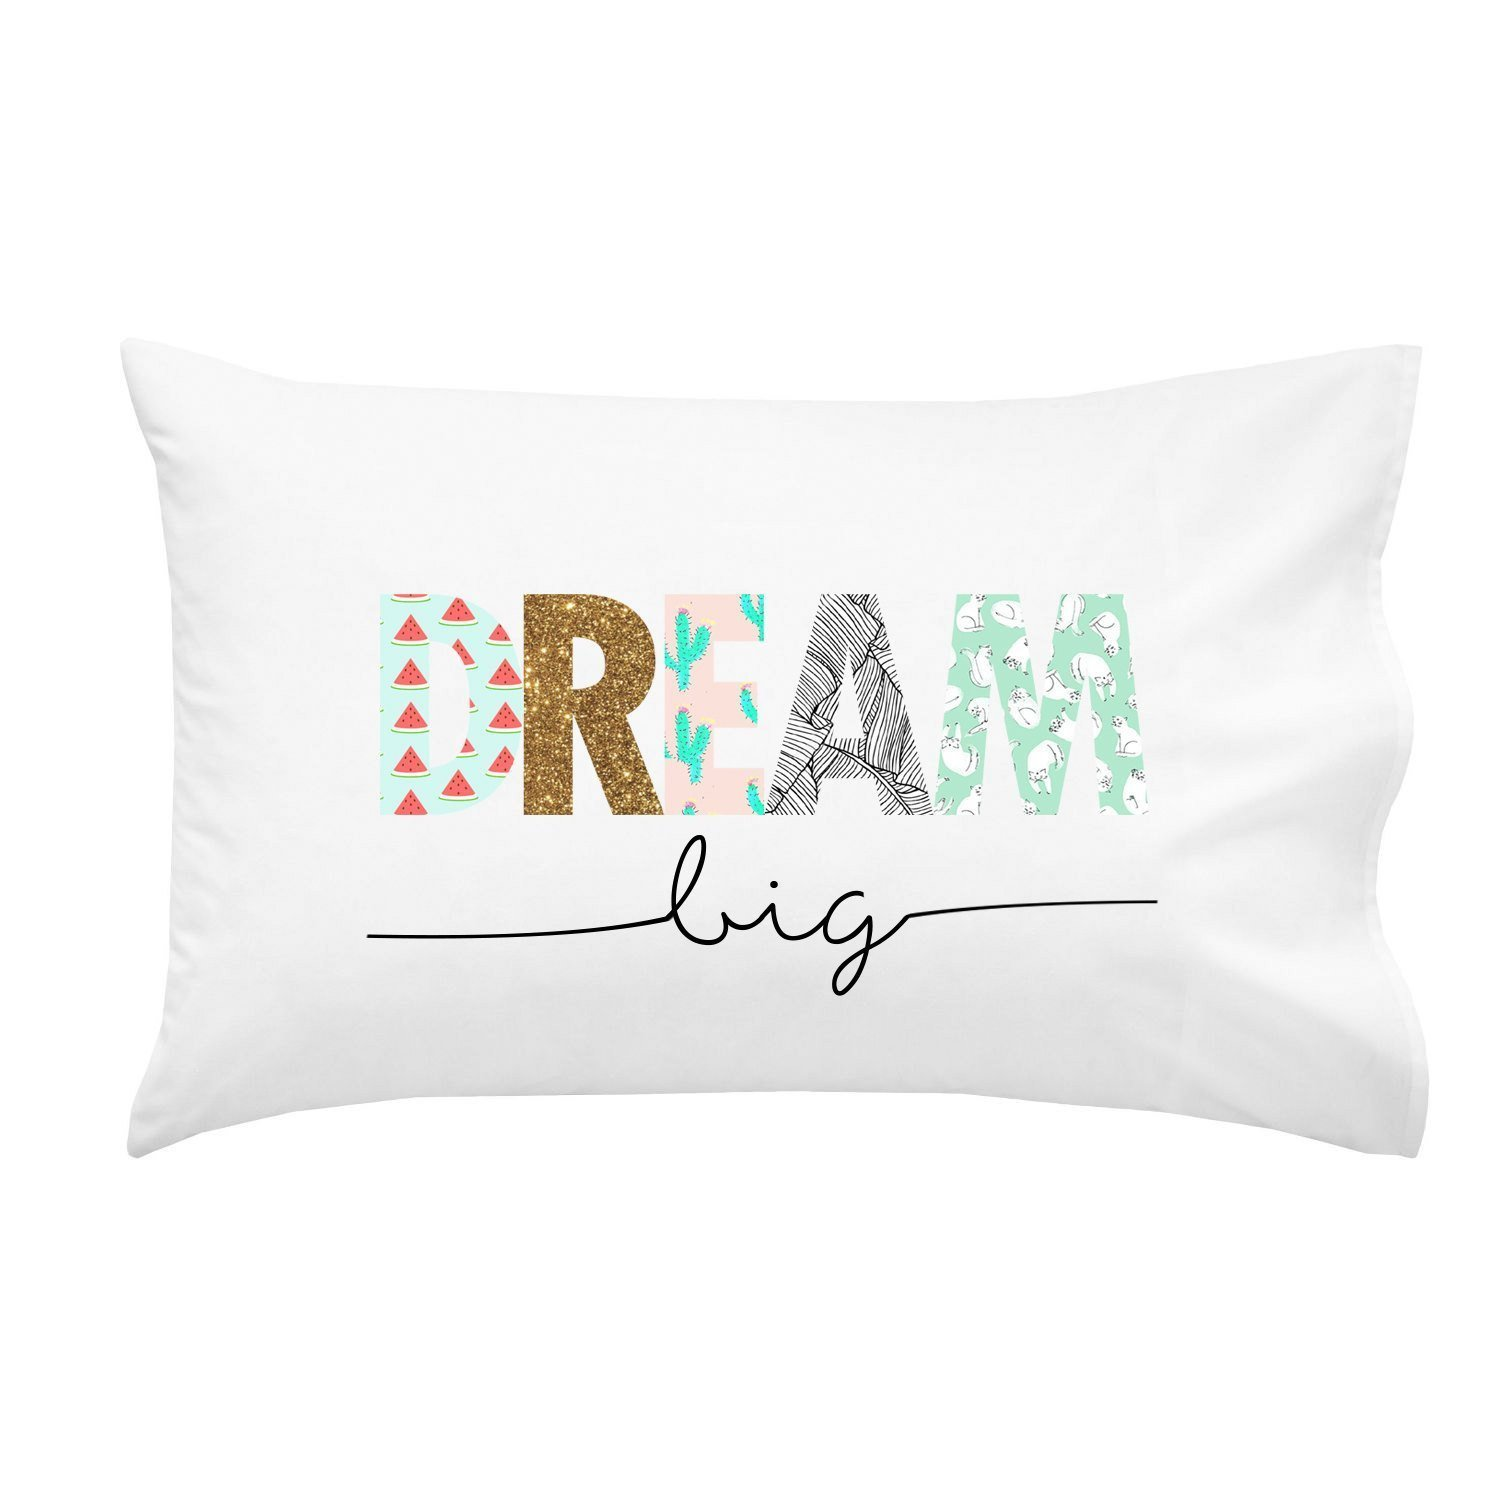 pair luxury hotelweight lux pillow snow pillowcase sheridan cases